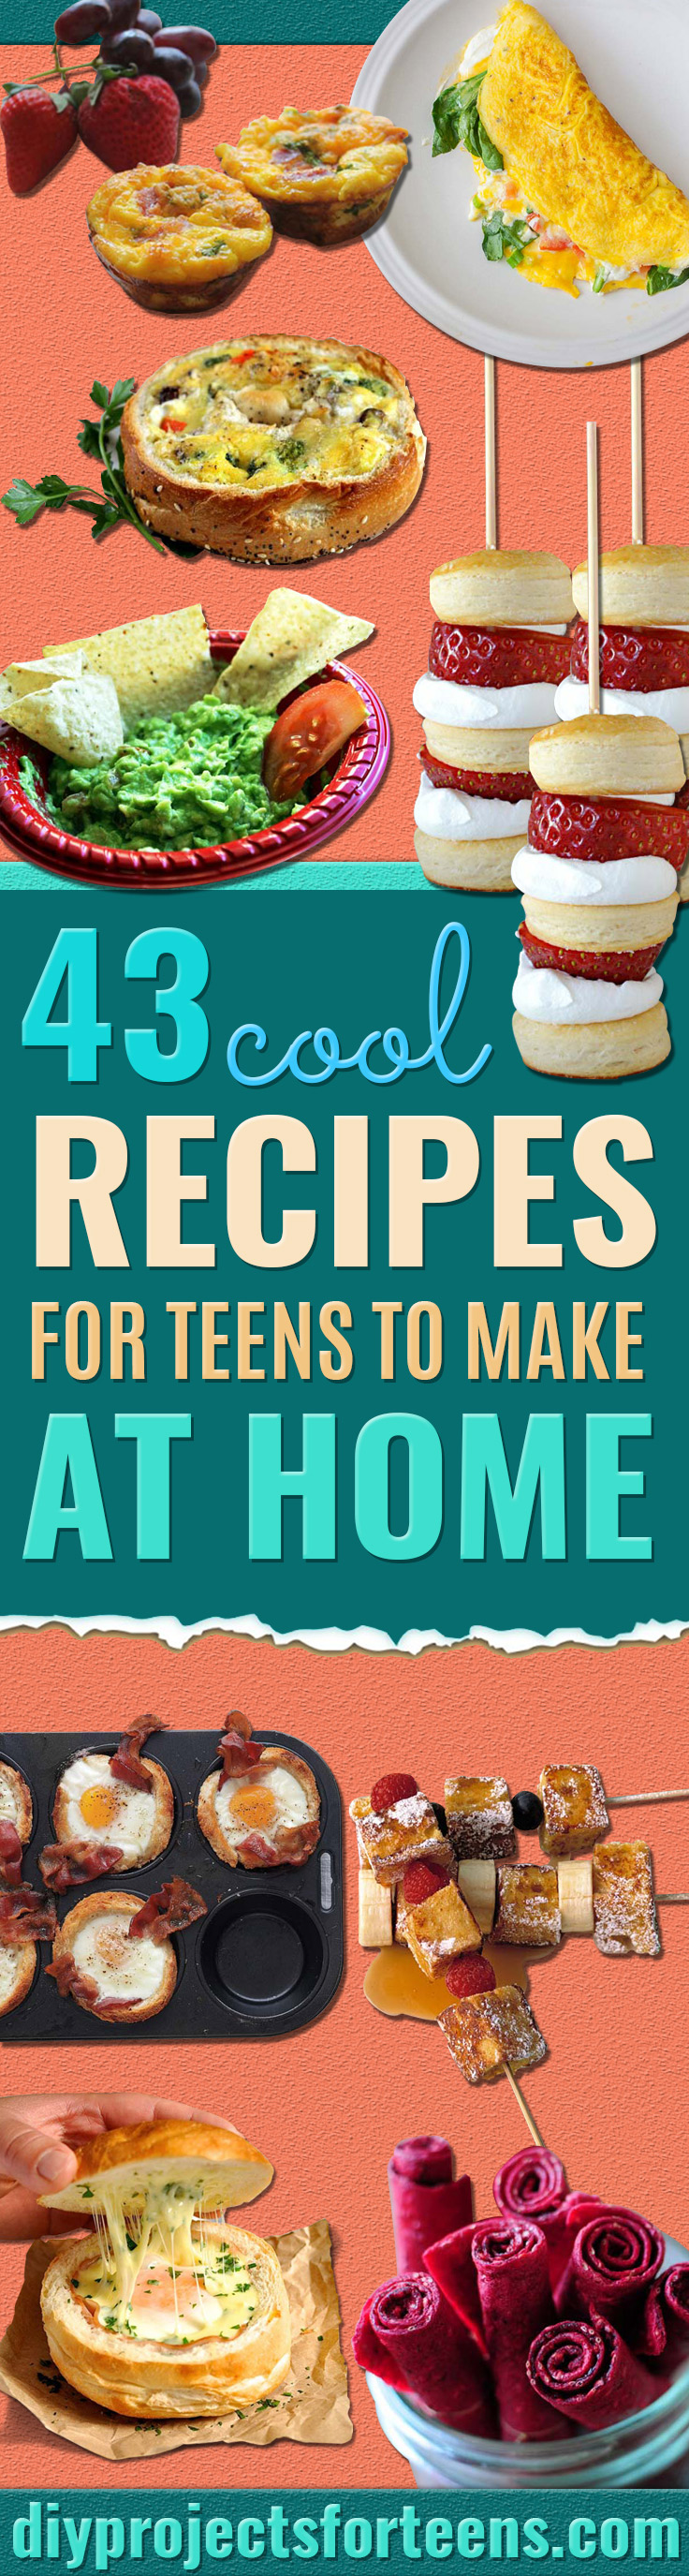 Cool And Easy Recipes For Teens To Make At Home   Fun Snacks, Simple  Breakfasts Part 94